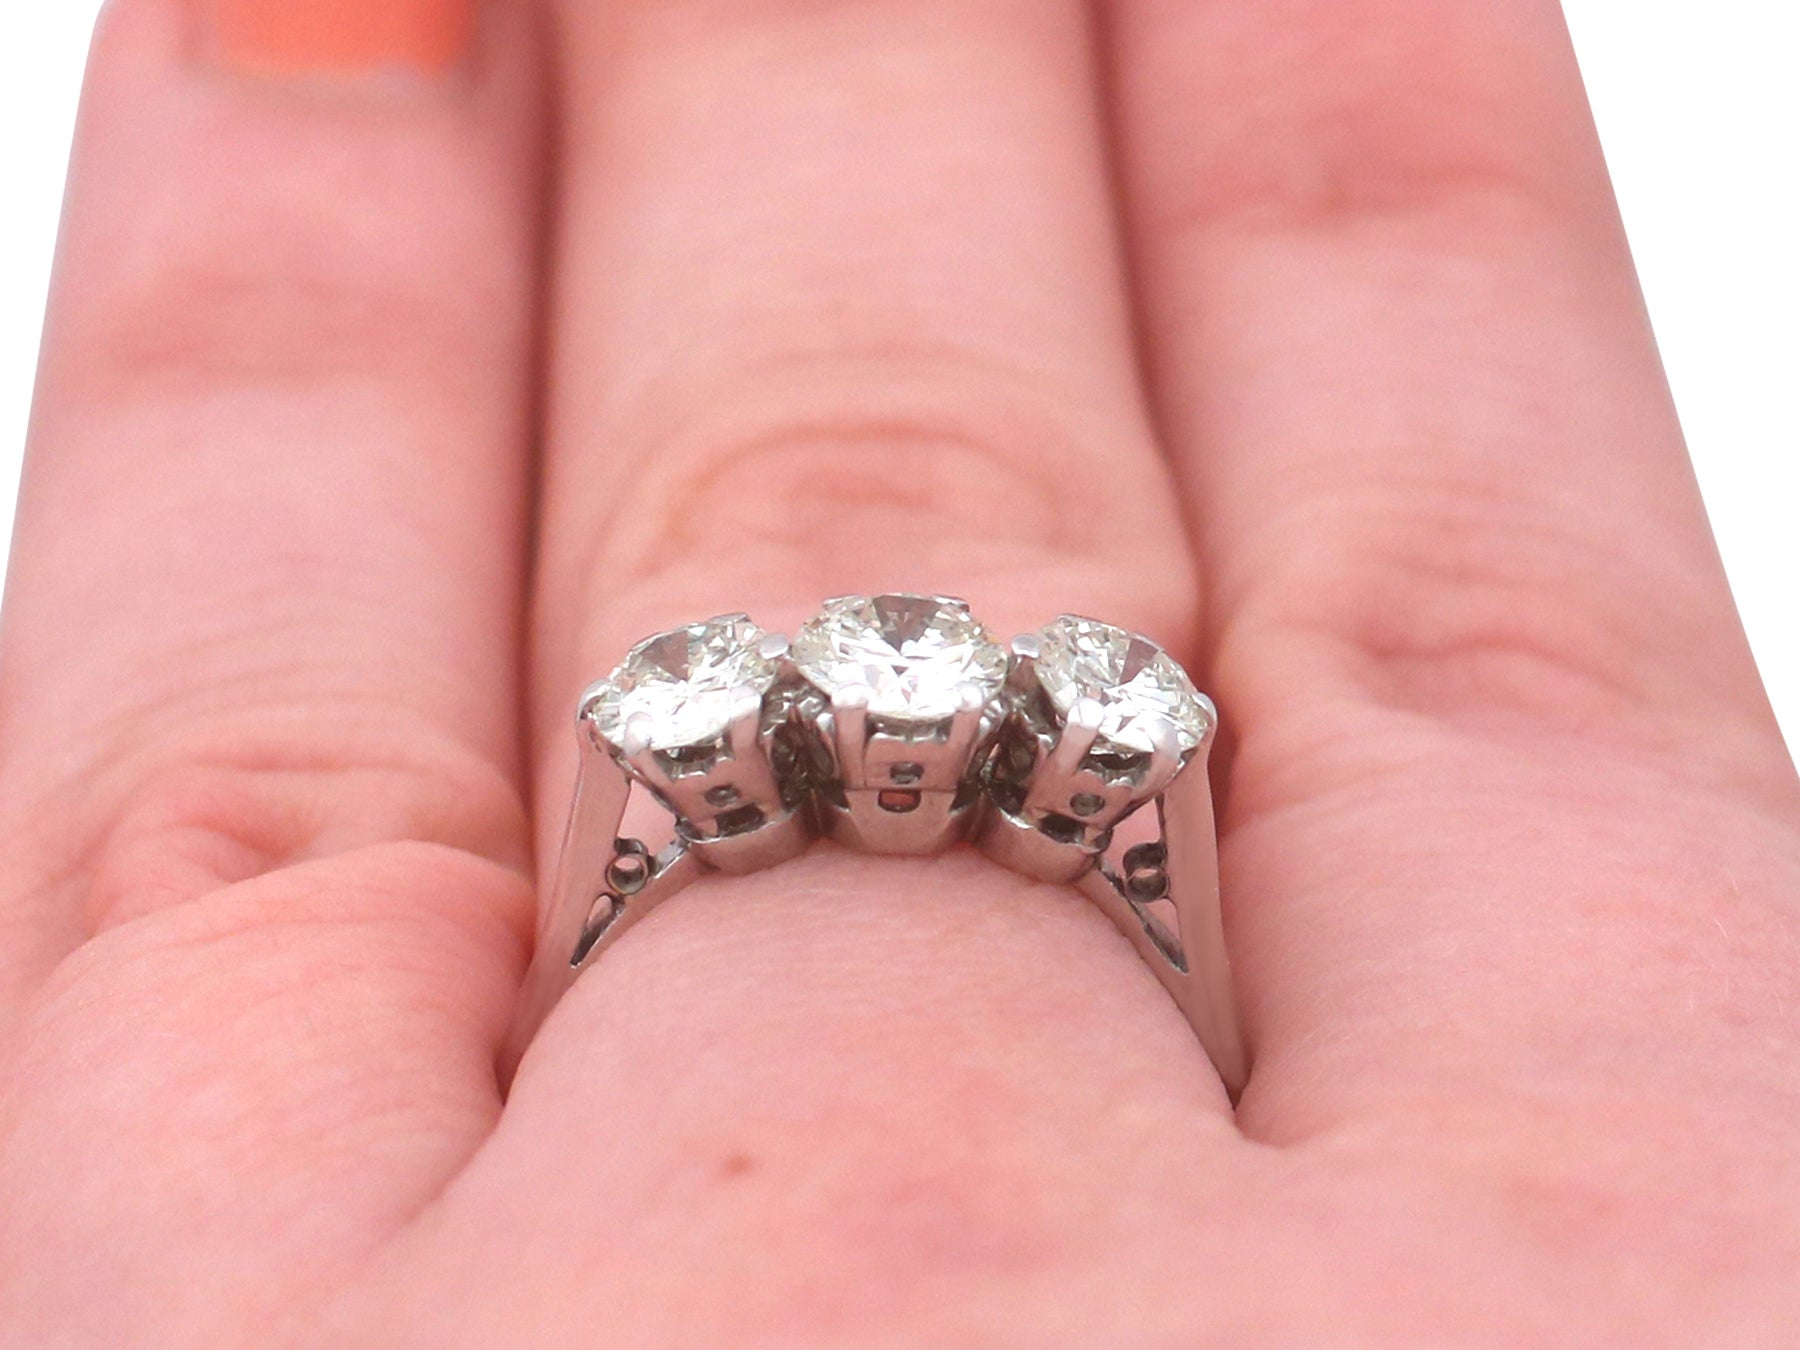 1940s 1.93 Carat Diamond and White Gold Trilogy Ring For Sale at 1stdibs